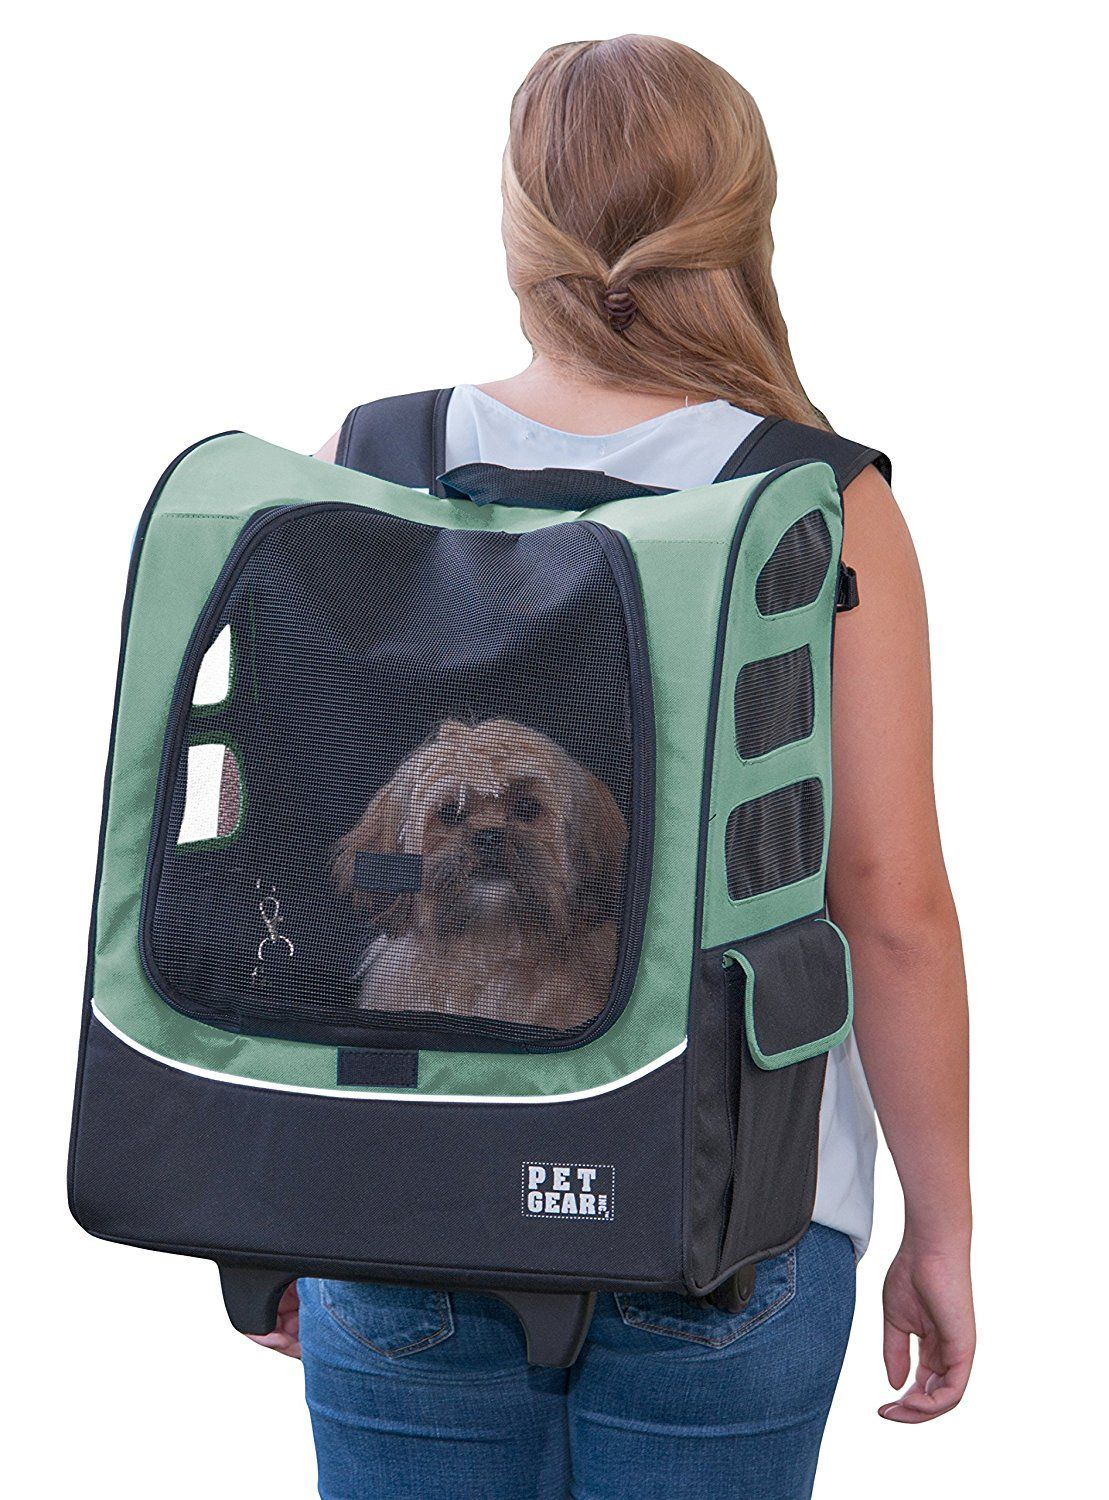 Surprising Things They Sell for Dogs! Who Knew Dog